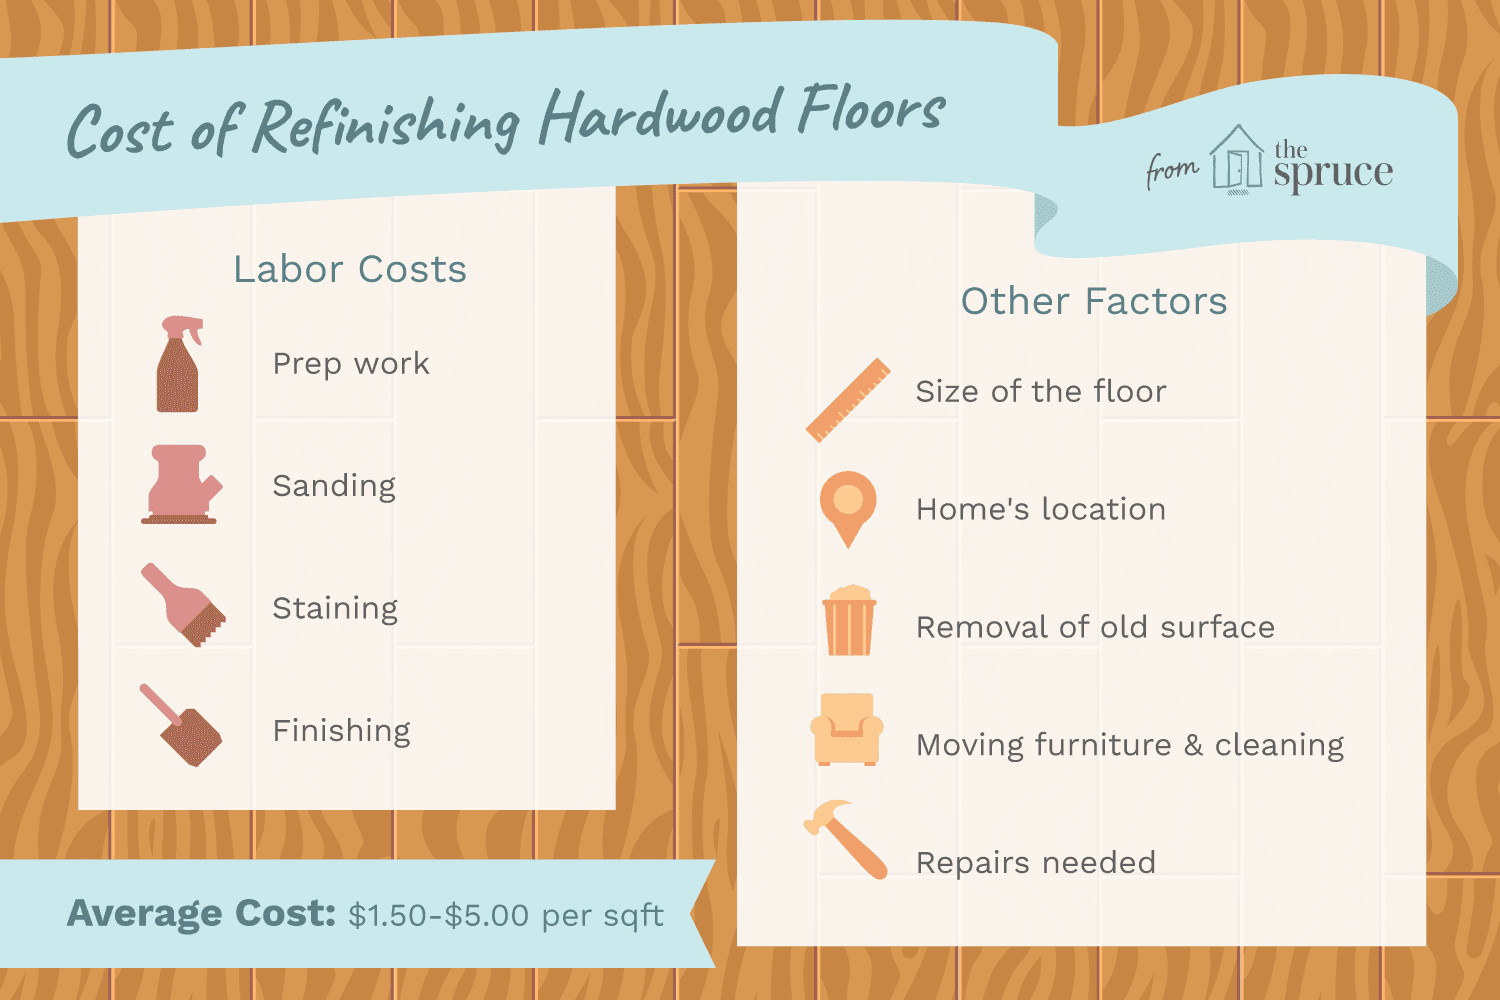 hardwood floor refinishing okc of the cost to refinish hardwood floors with regard to cost to refinish hardwood floors 1314853 final 5bb6259346e0fb0026825ce2